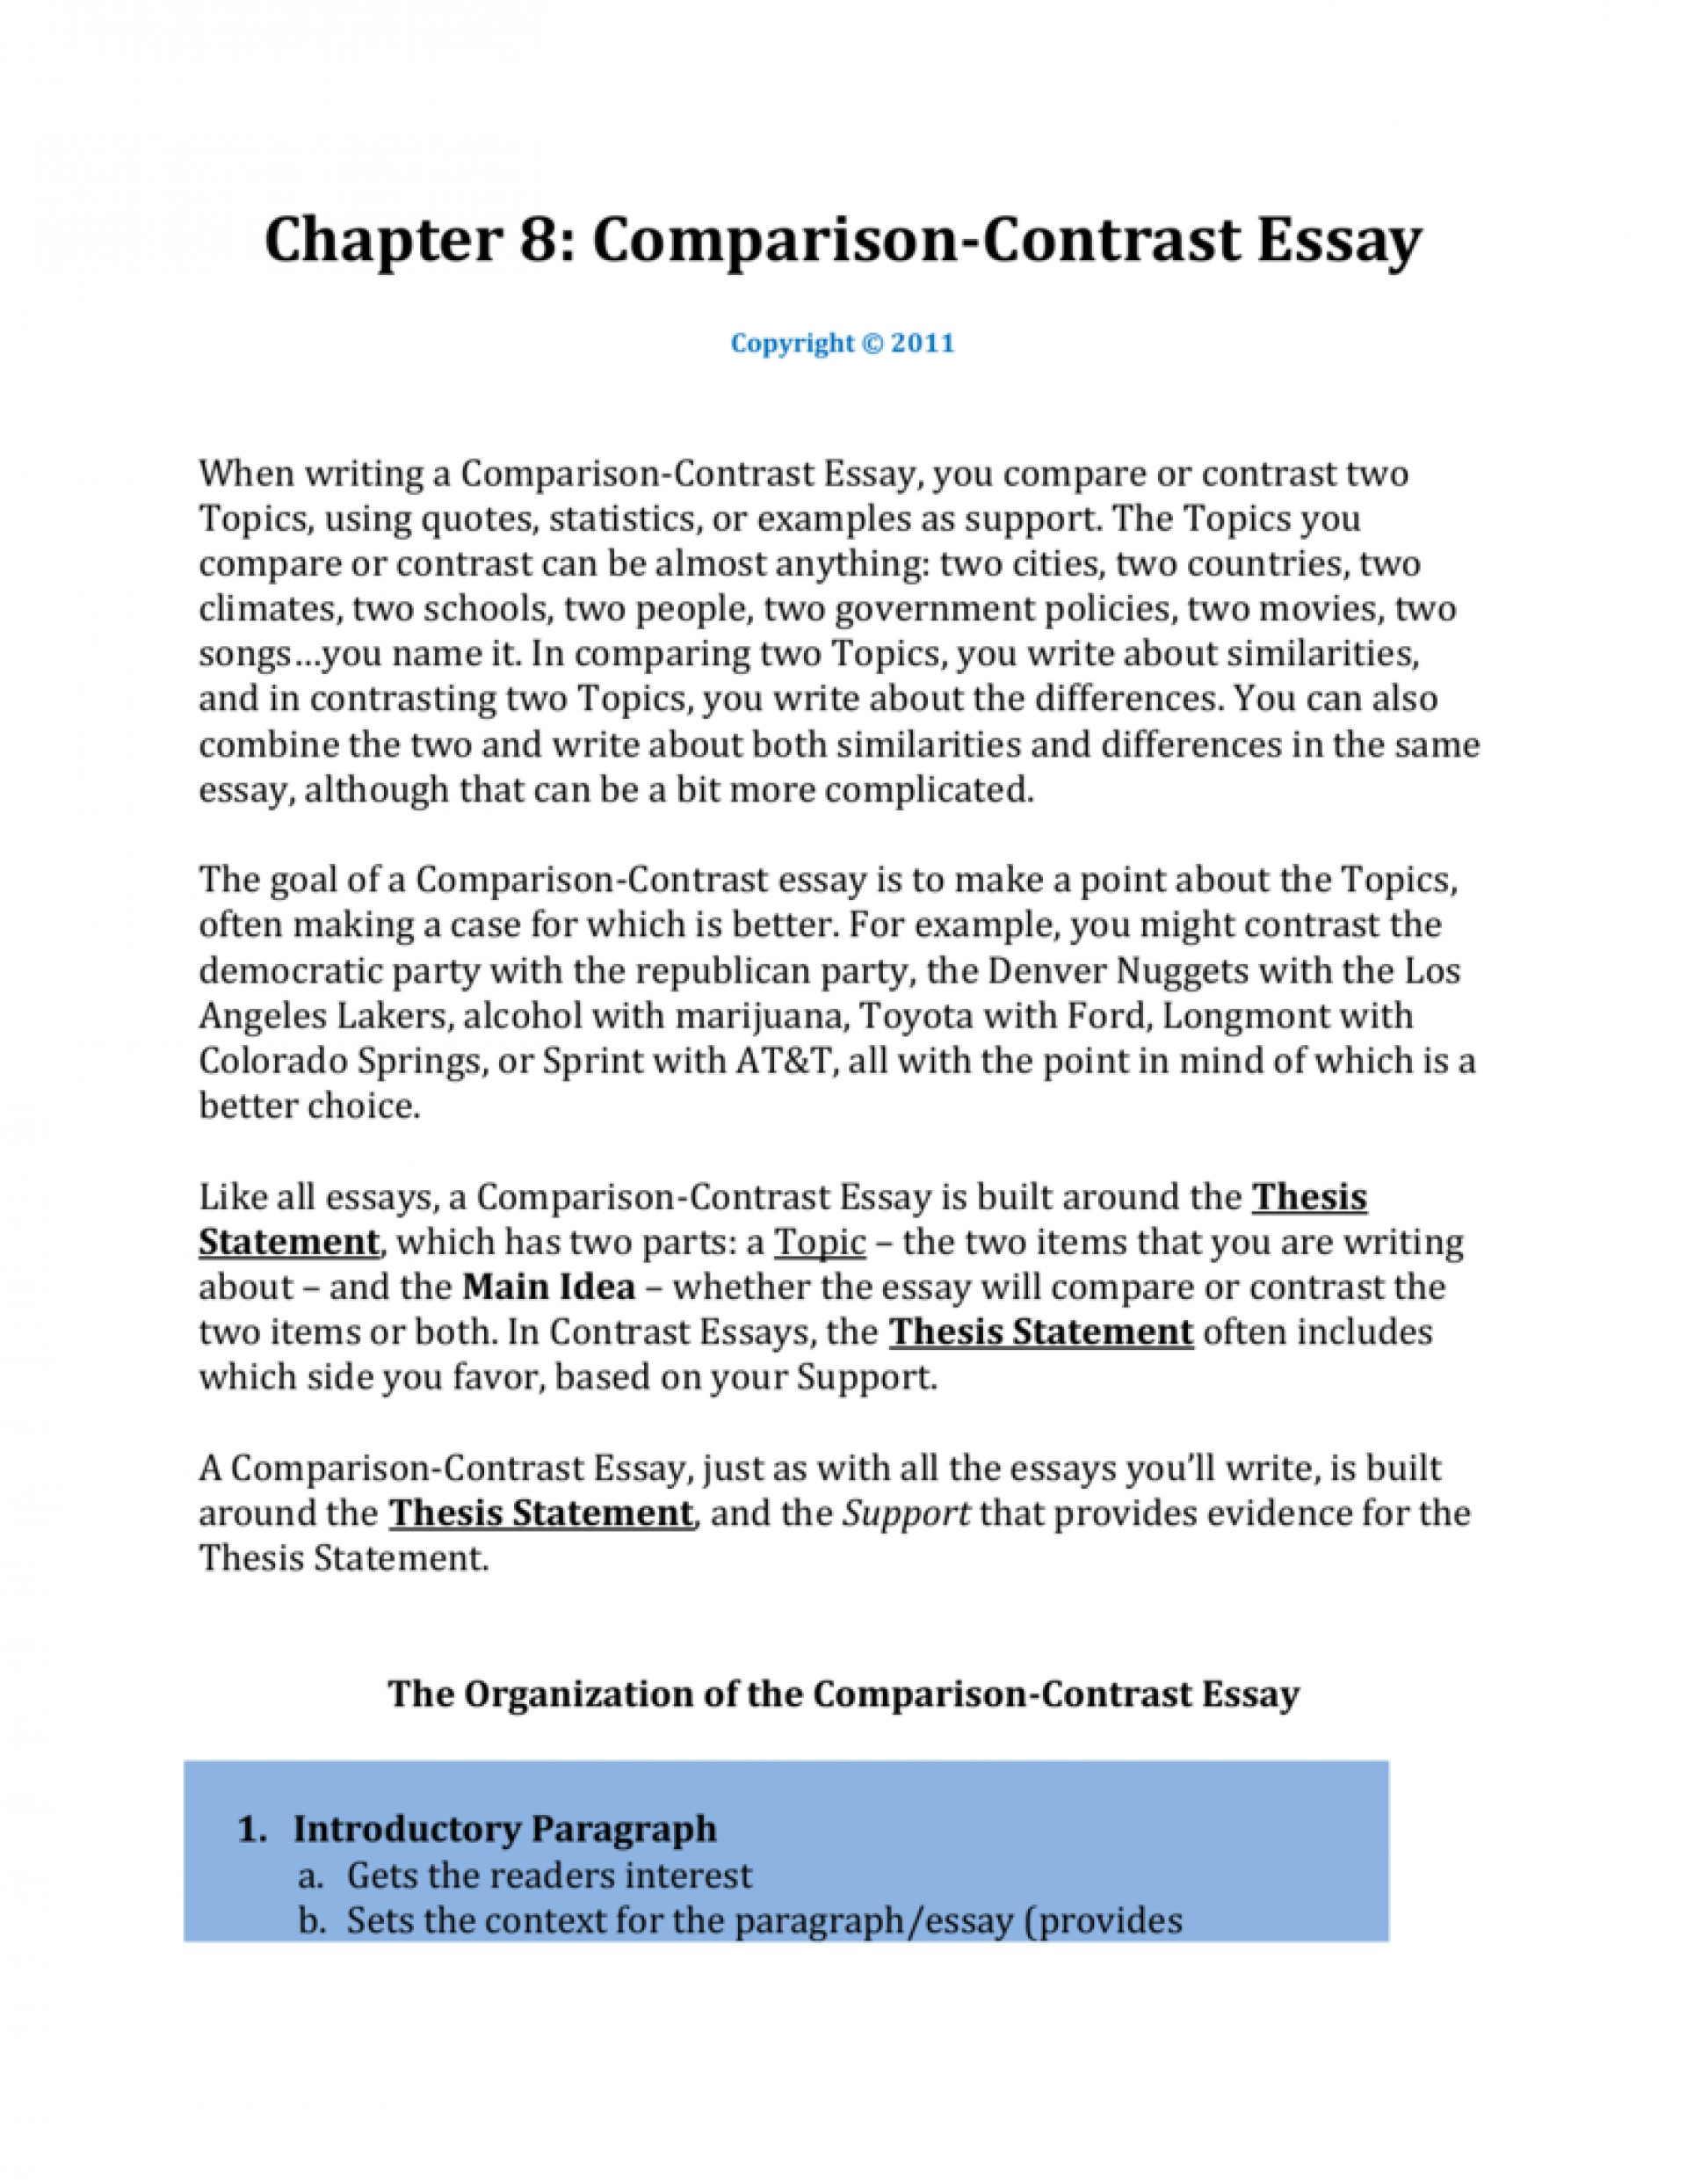 007 Examples Of Compare And Contrast Essays Essay Example 007207405 1 Unique Samples For College Comparison Topics Fifth Grade 1920